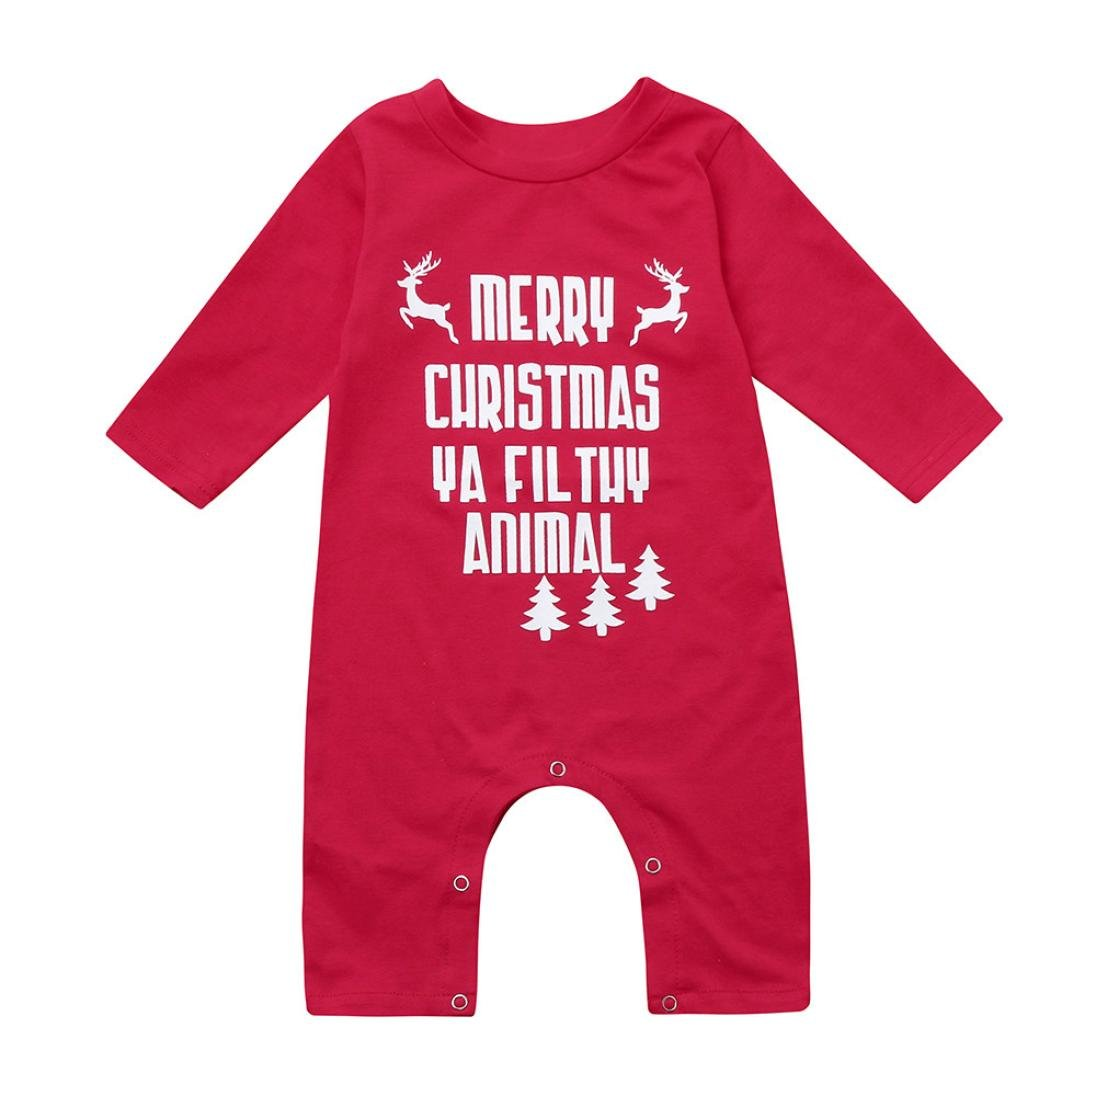 For 0-18 Months Baby,DIGOOD Christmas Toddler Baby Boys Girls Cute Letter Deer Jumpsuit Clothes Set